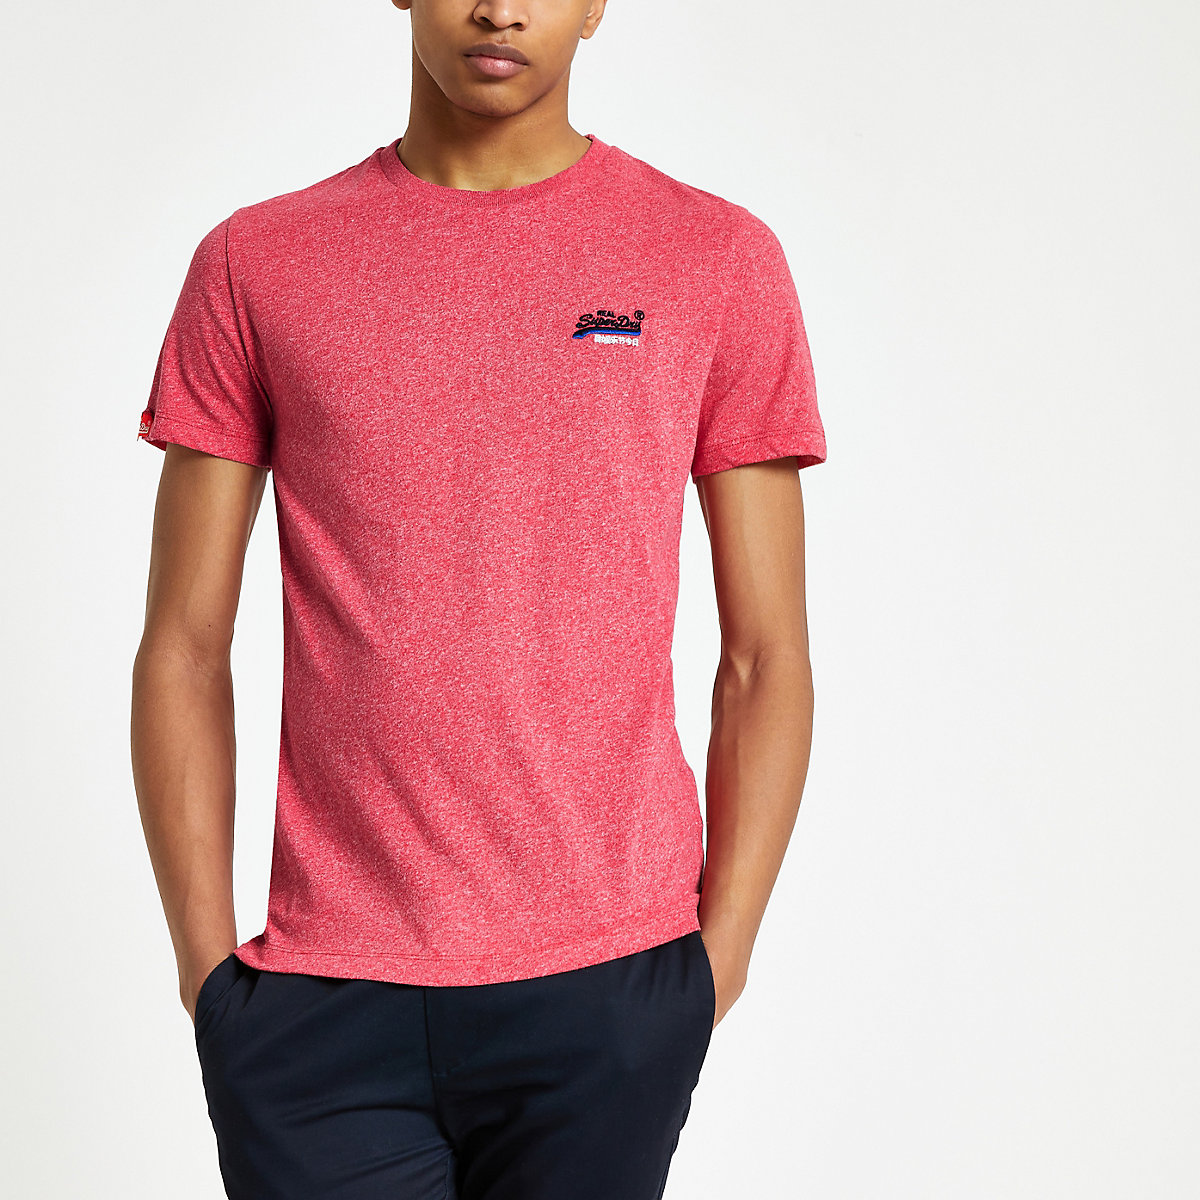 Superdry red logo embroidered T-shirt